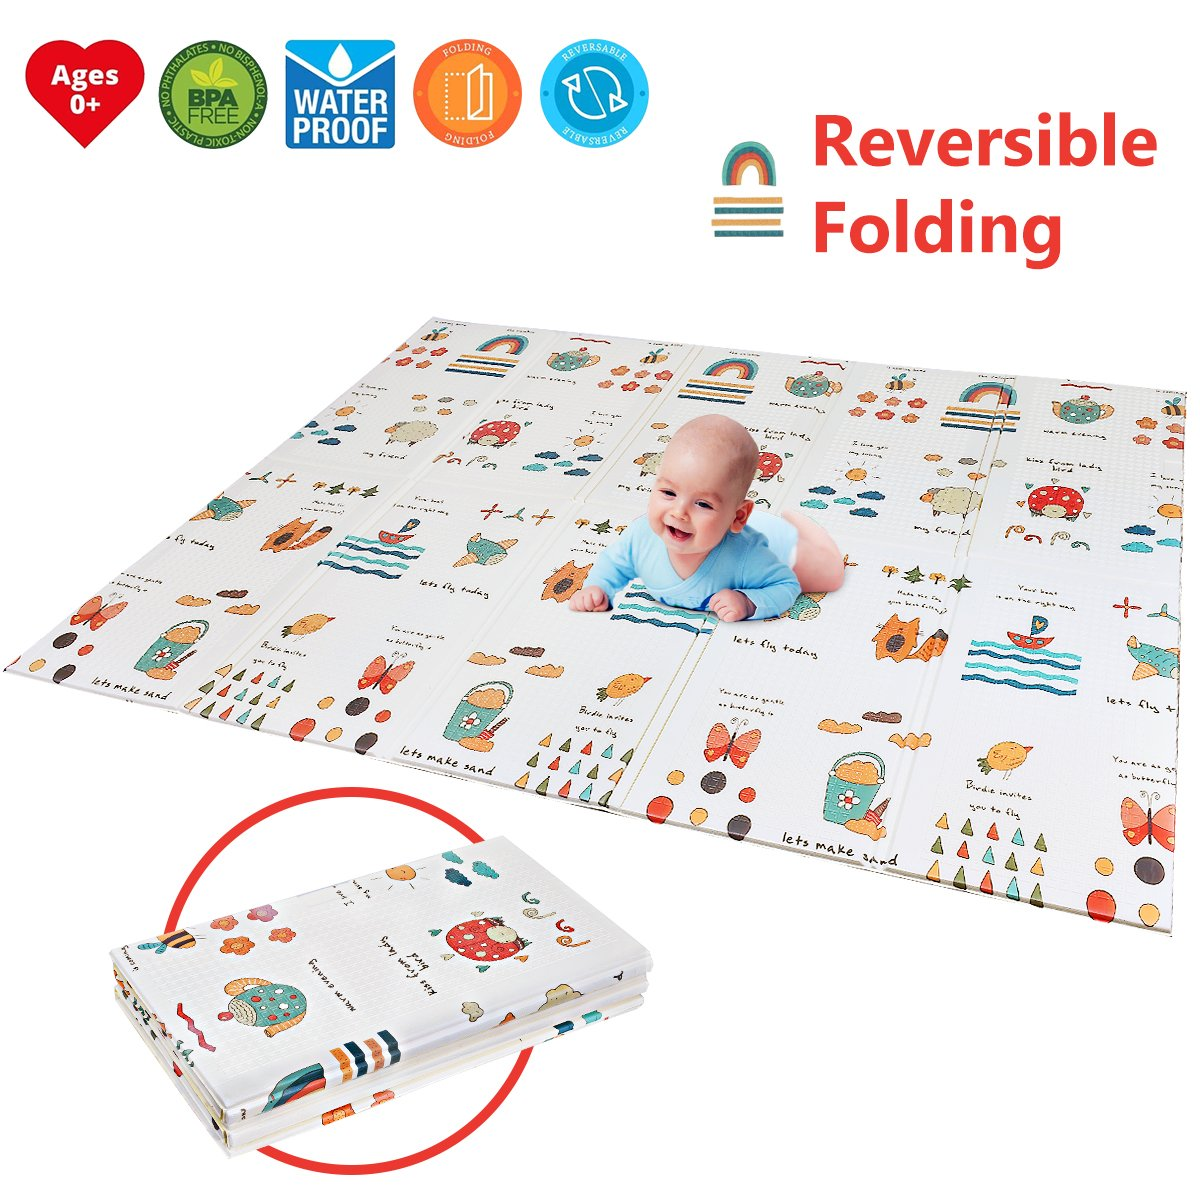 "Foldable Play Mat | BPA Free Non-Toxic Foam Baby Playmat 78.7"" x 59 0.4"" Thick Extra Large Reversible Crawling Mat Portable Toddlers Kids Waterproof Non-Slip Activity Tummy Time (Road of City) Forstart ML-A02PAN-PM04"